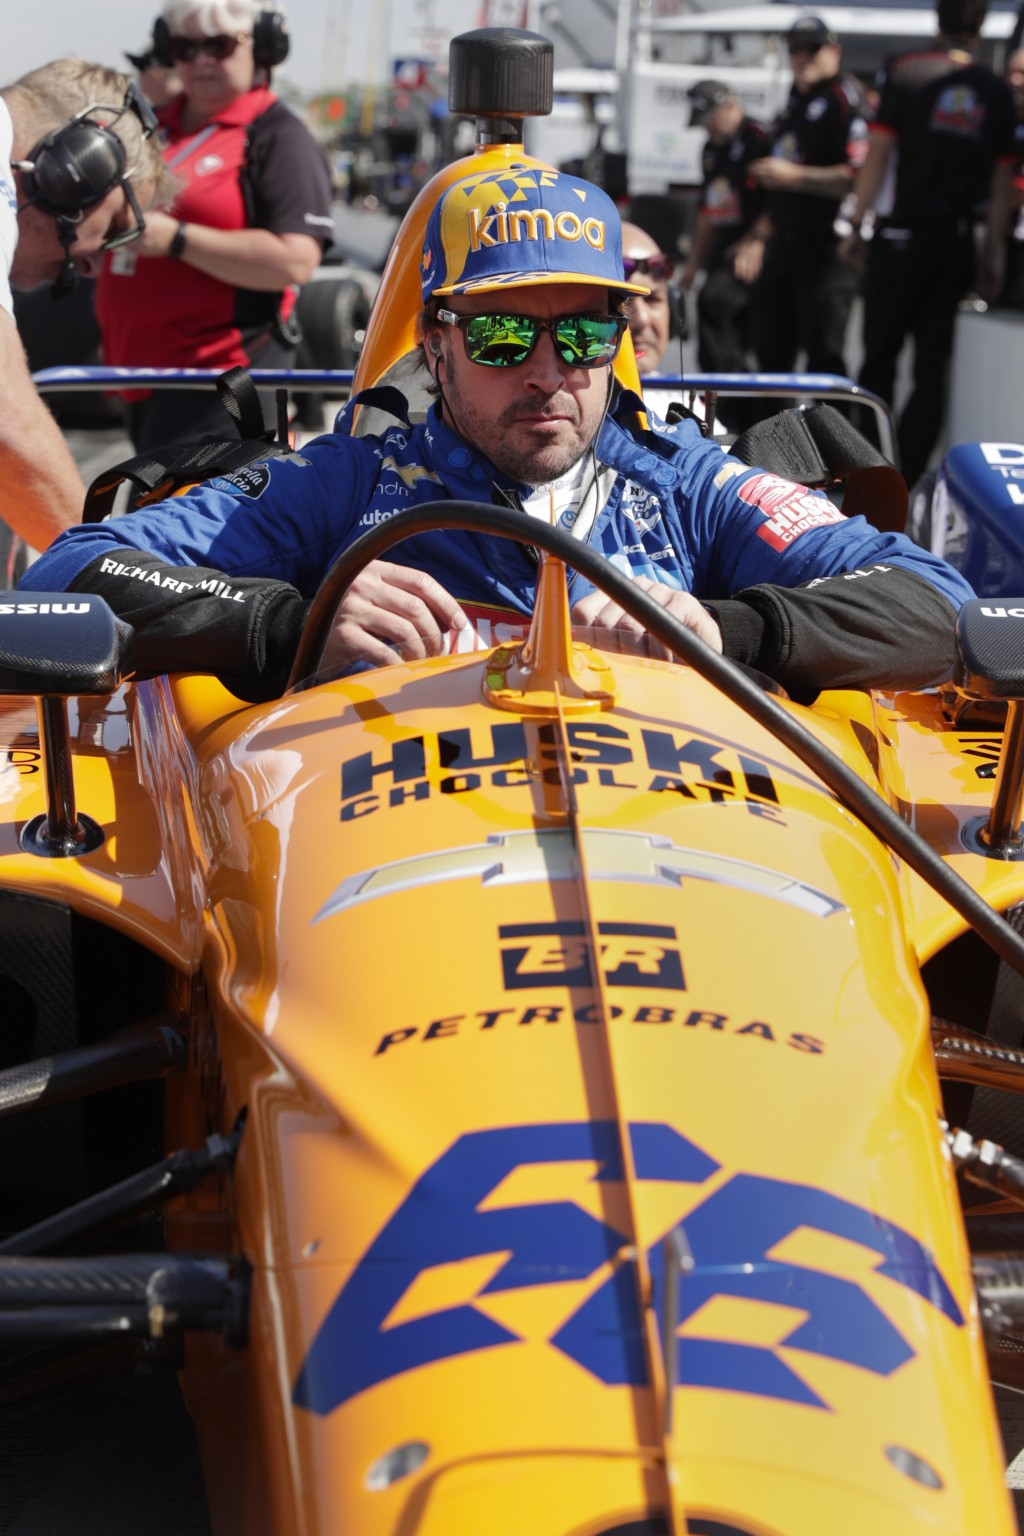 Fernando Alonso, of Spain, climbs into his car during practice for the Indianapolis 500 IndyCar auto race at Indianapolis Motor Speedway, Wednesday, M